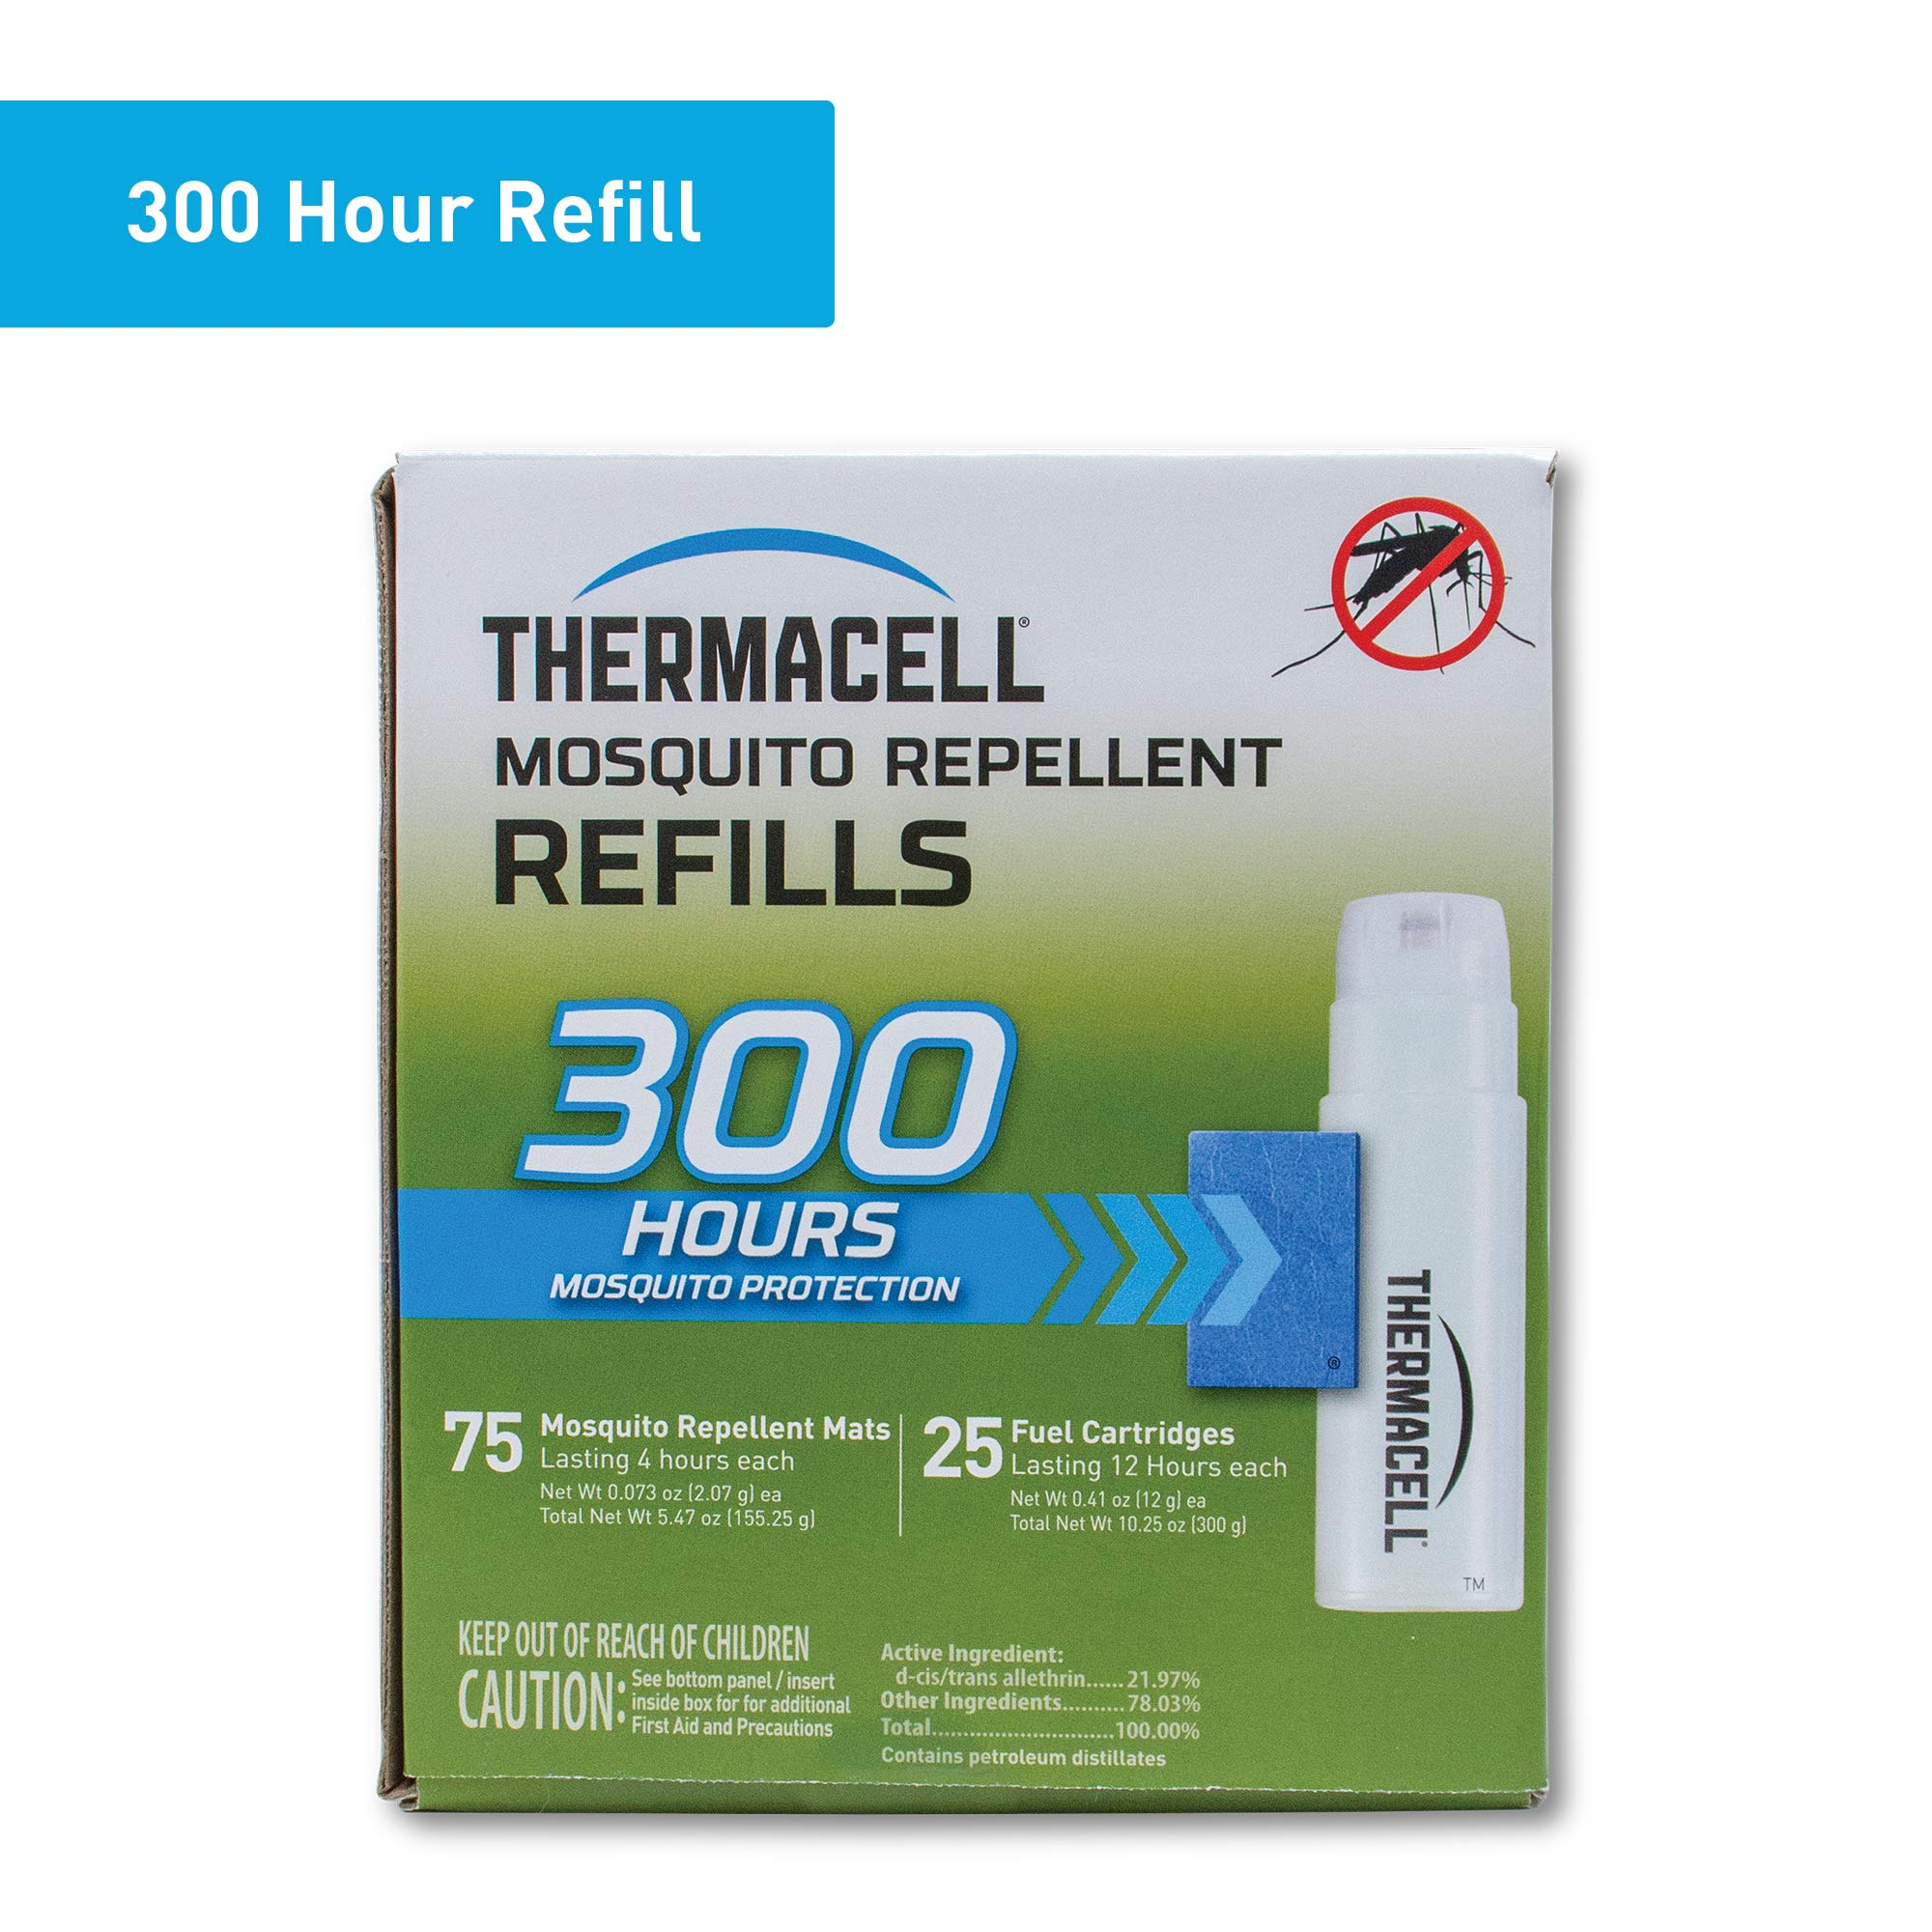 Thermacell Mosquito Repellent Refills, 300-Hr Pack; Contains 75 Repellent Mats, 25 Fuel Cartridges; Compatible with Any Fuel-Powered Product; No Spray, Scent, Mess; 15 Ft Zone of Protection